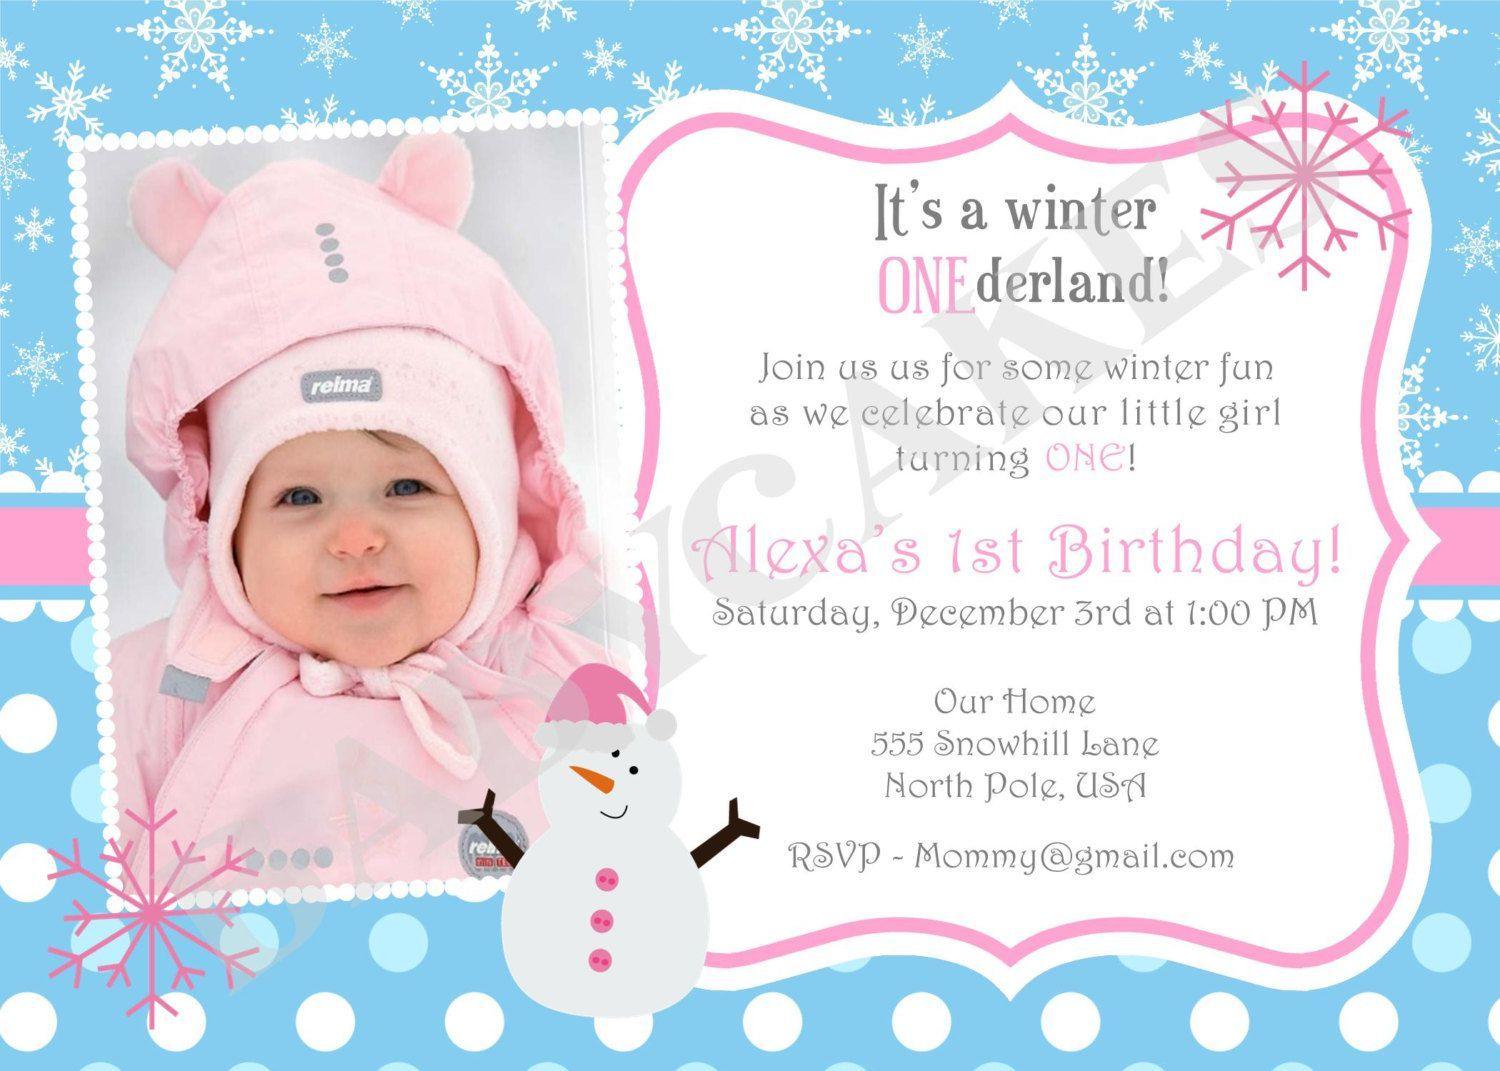 Birthday Invitation Wording For Year Old Birthday Invitations - Birthday invitation templates for 1 year old